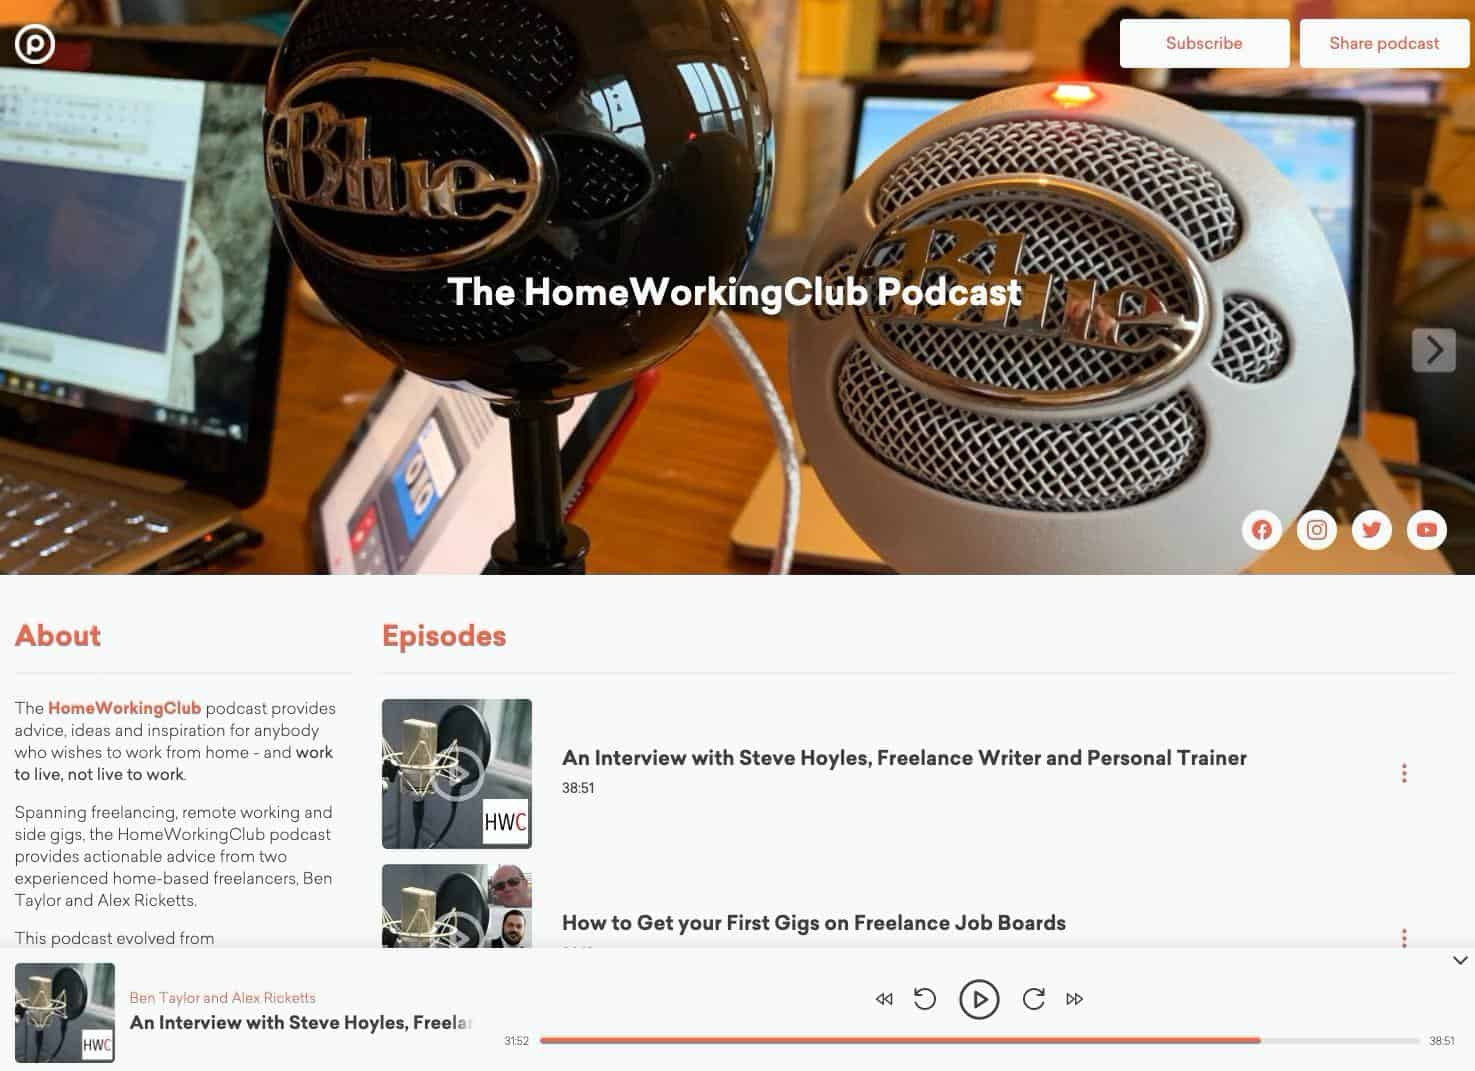 Podcast page example